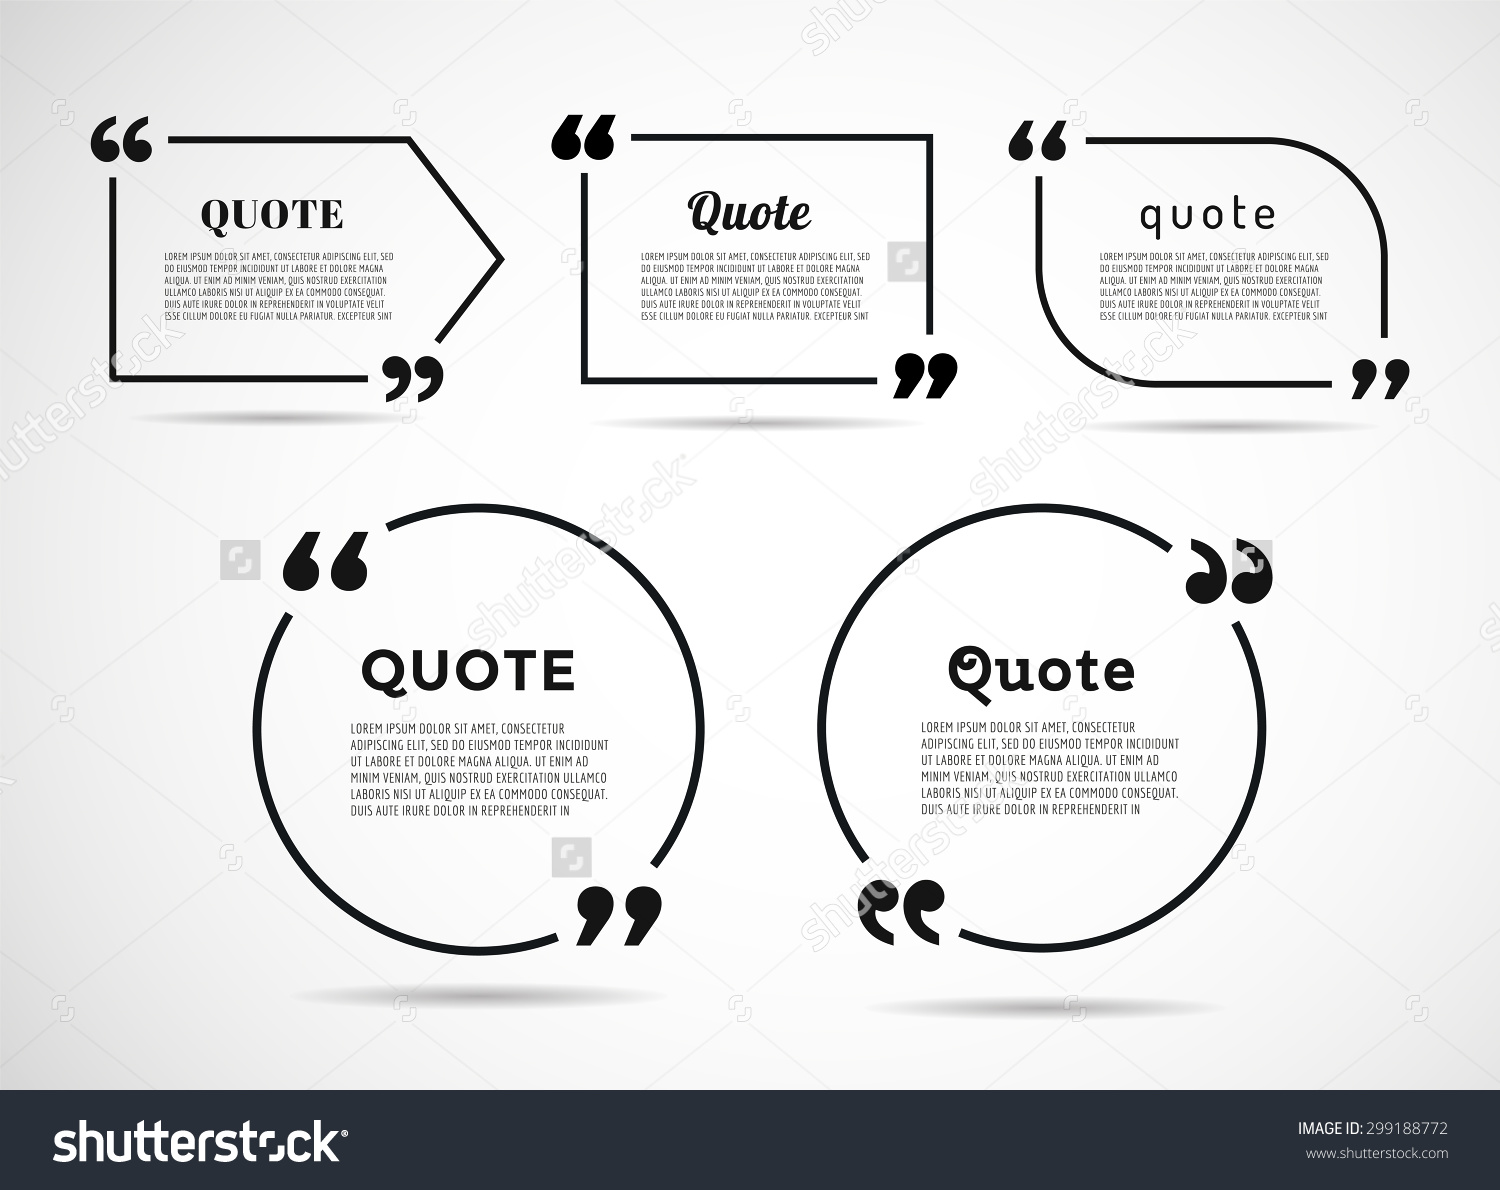 quote blank template stock vector illustration  quote blank template preview save to a lightbox